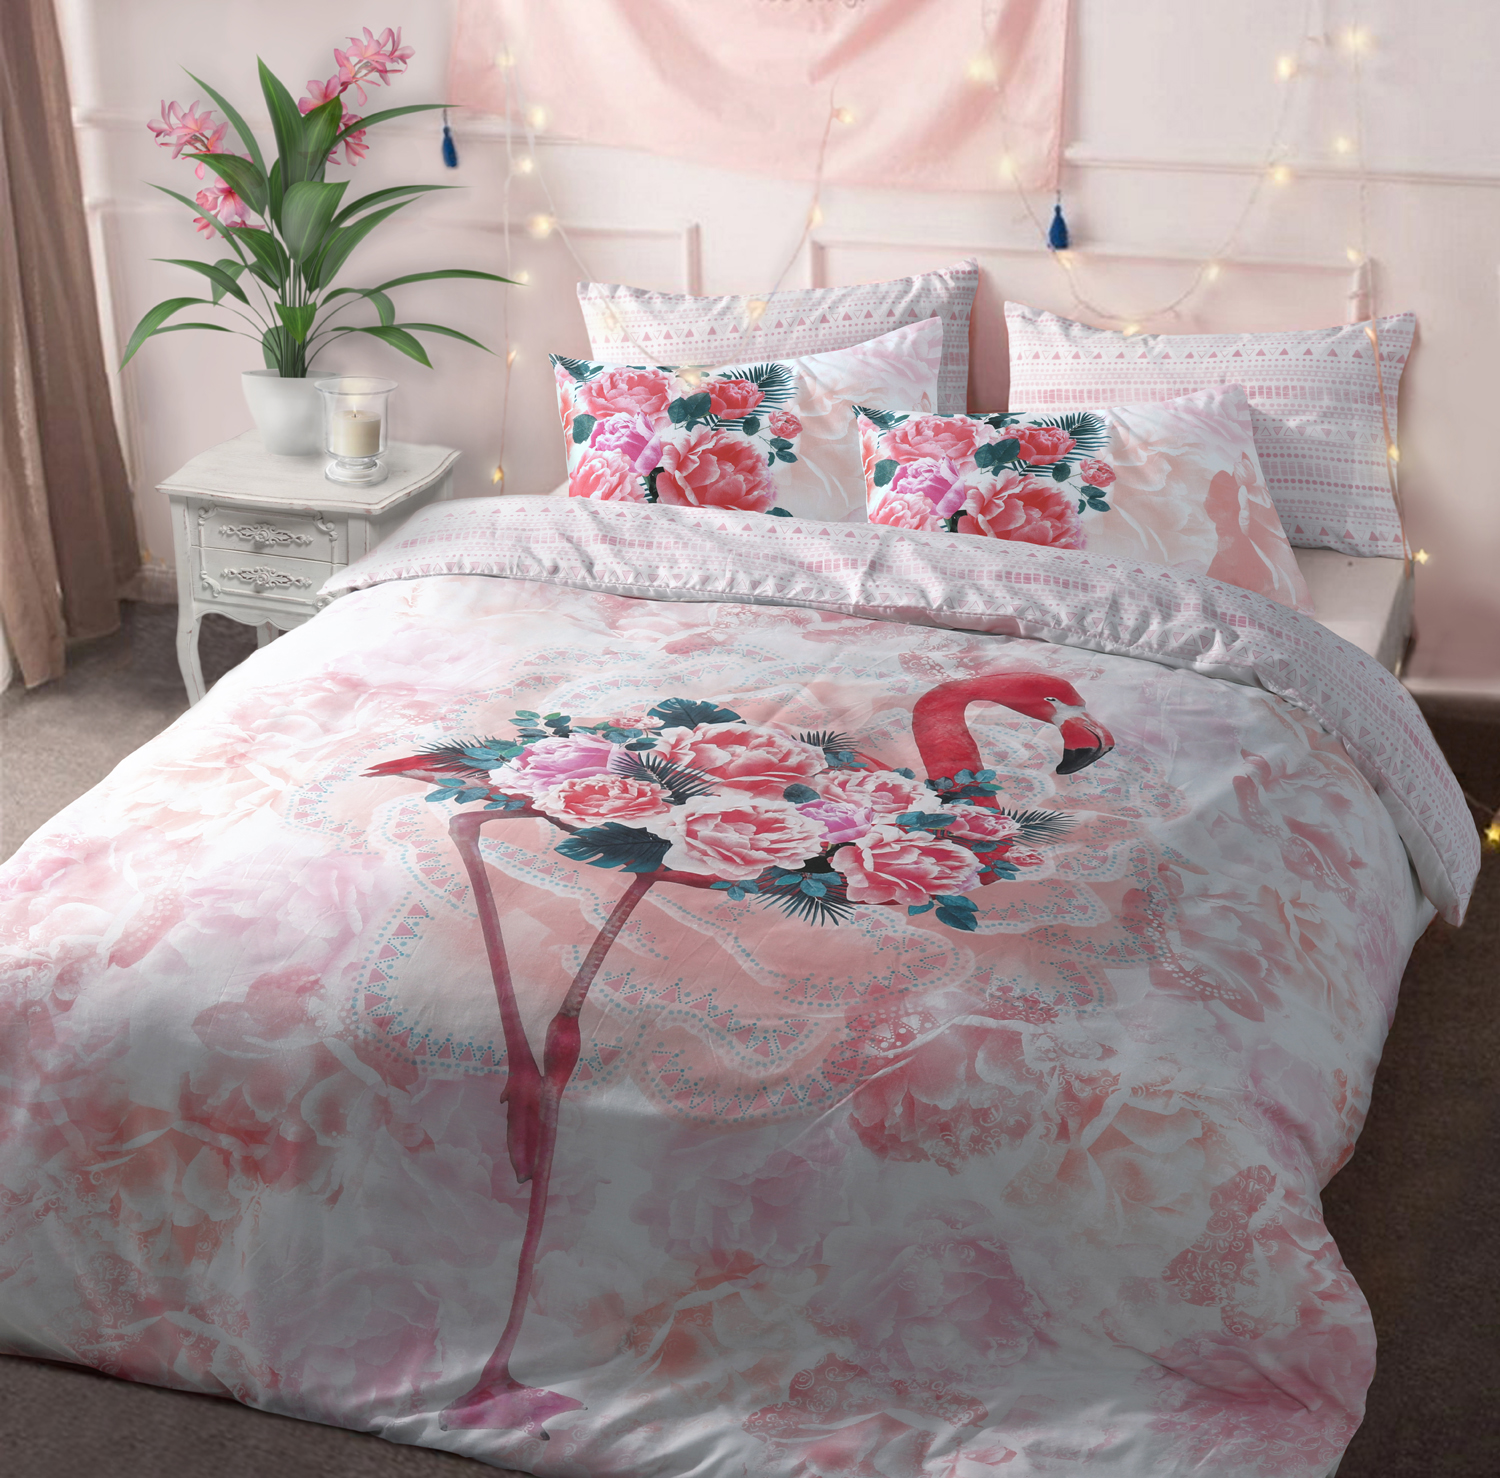 Flamingo Duvet Cover Set Wholesale Bedding Store De Lavish